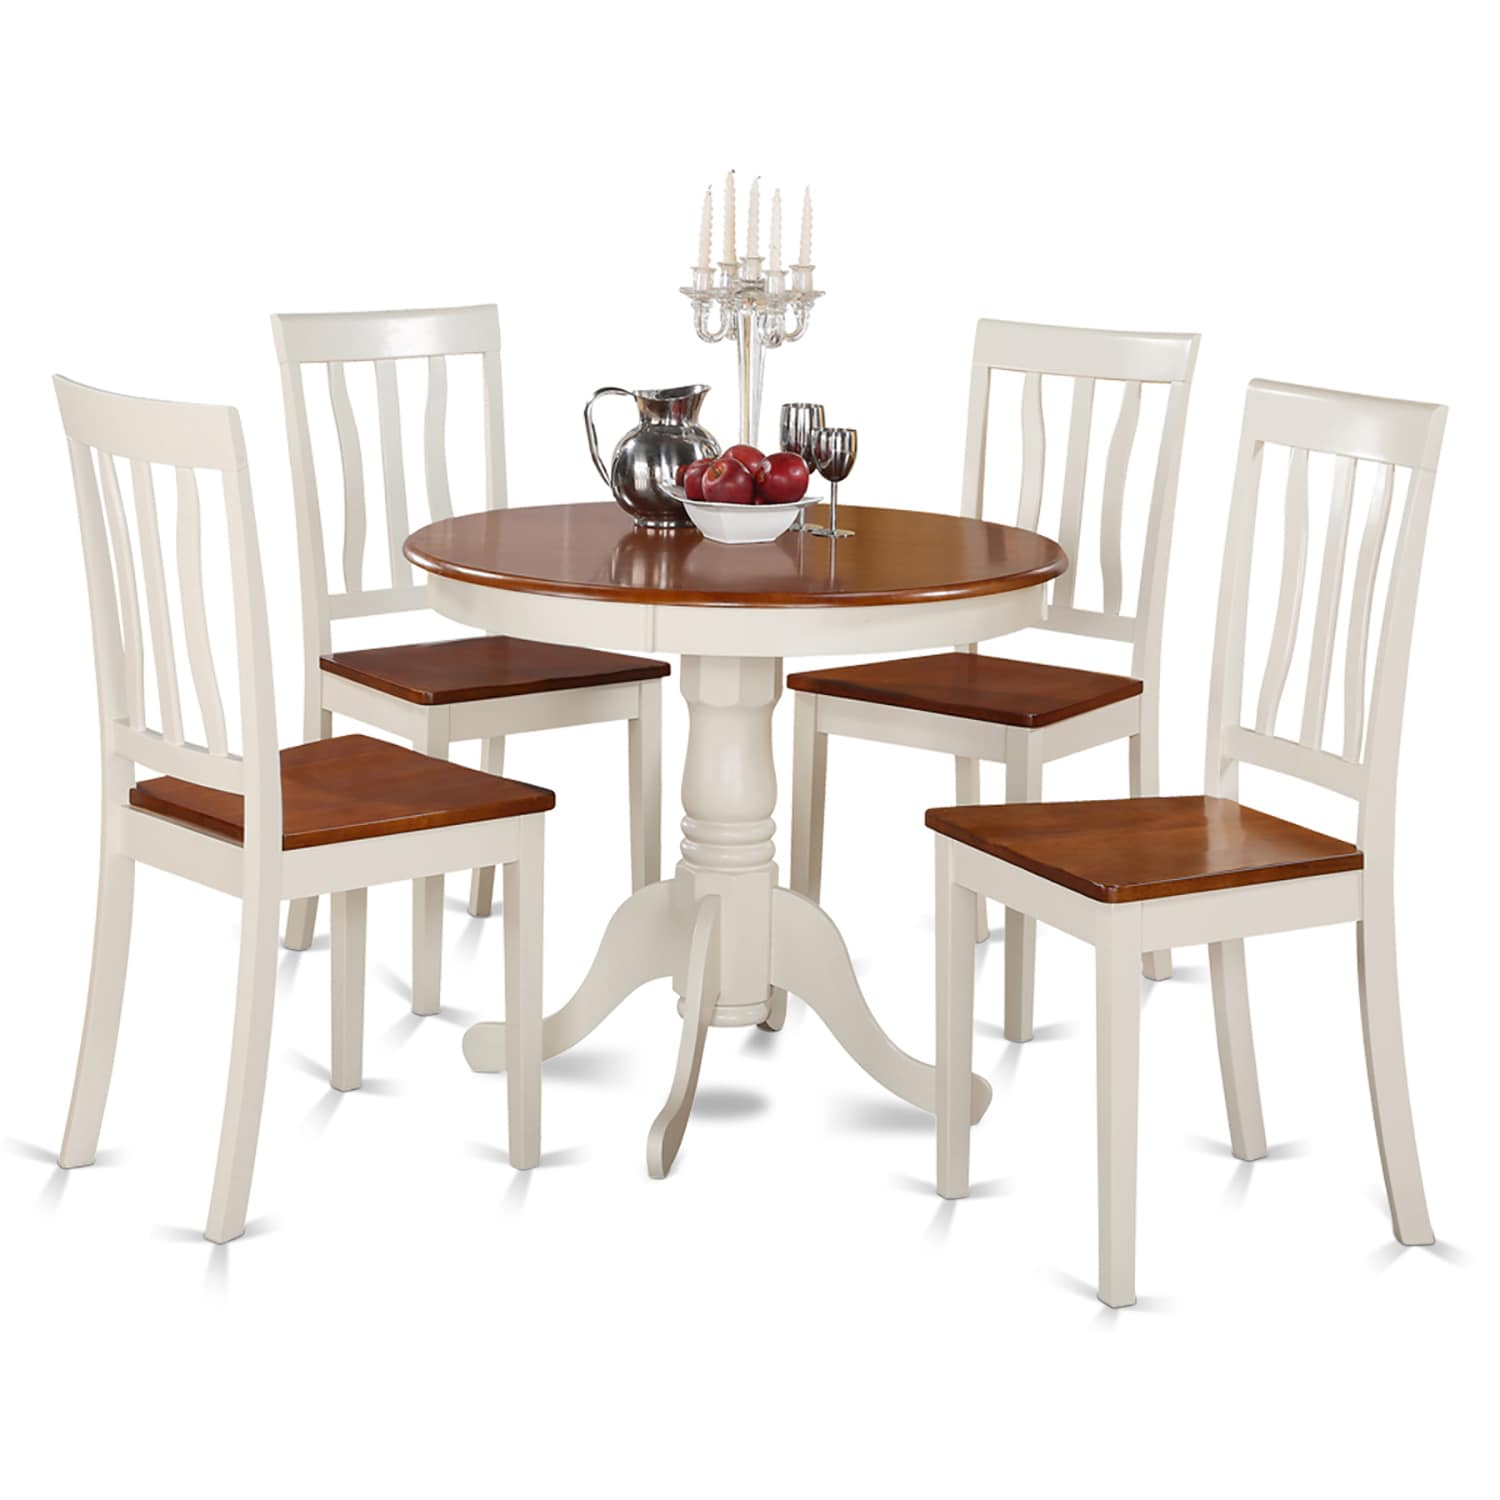 Havenside Home Cambria Buttermilk and Cherry Kitchen Table and Chair ...